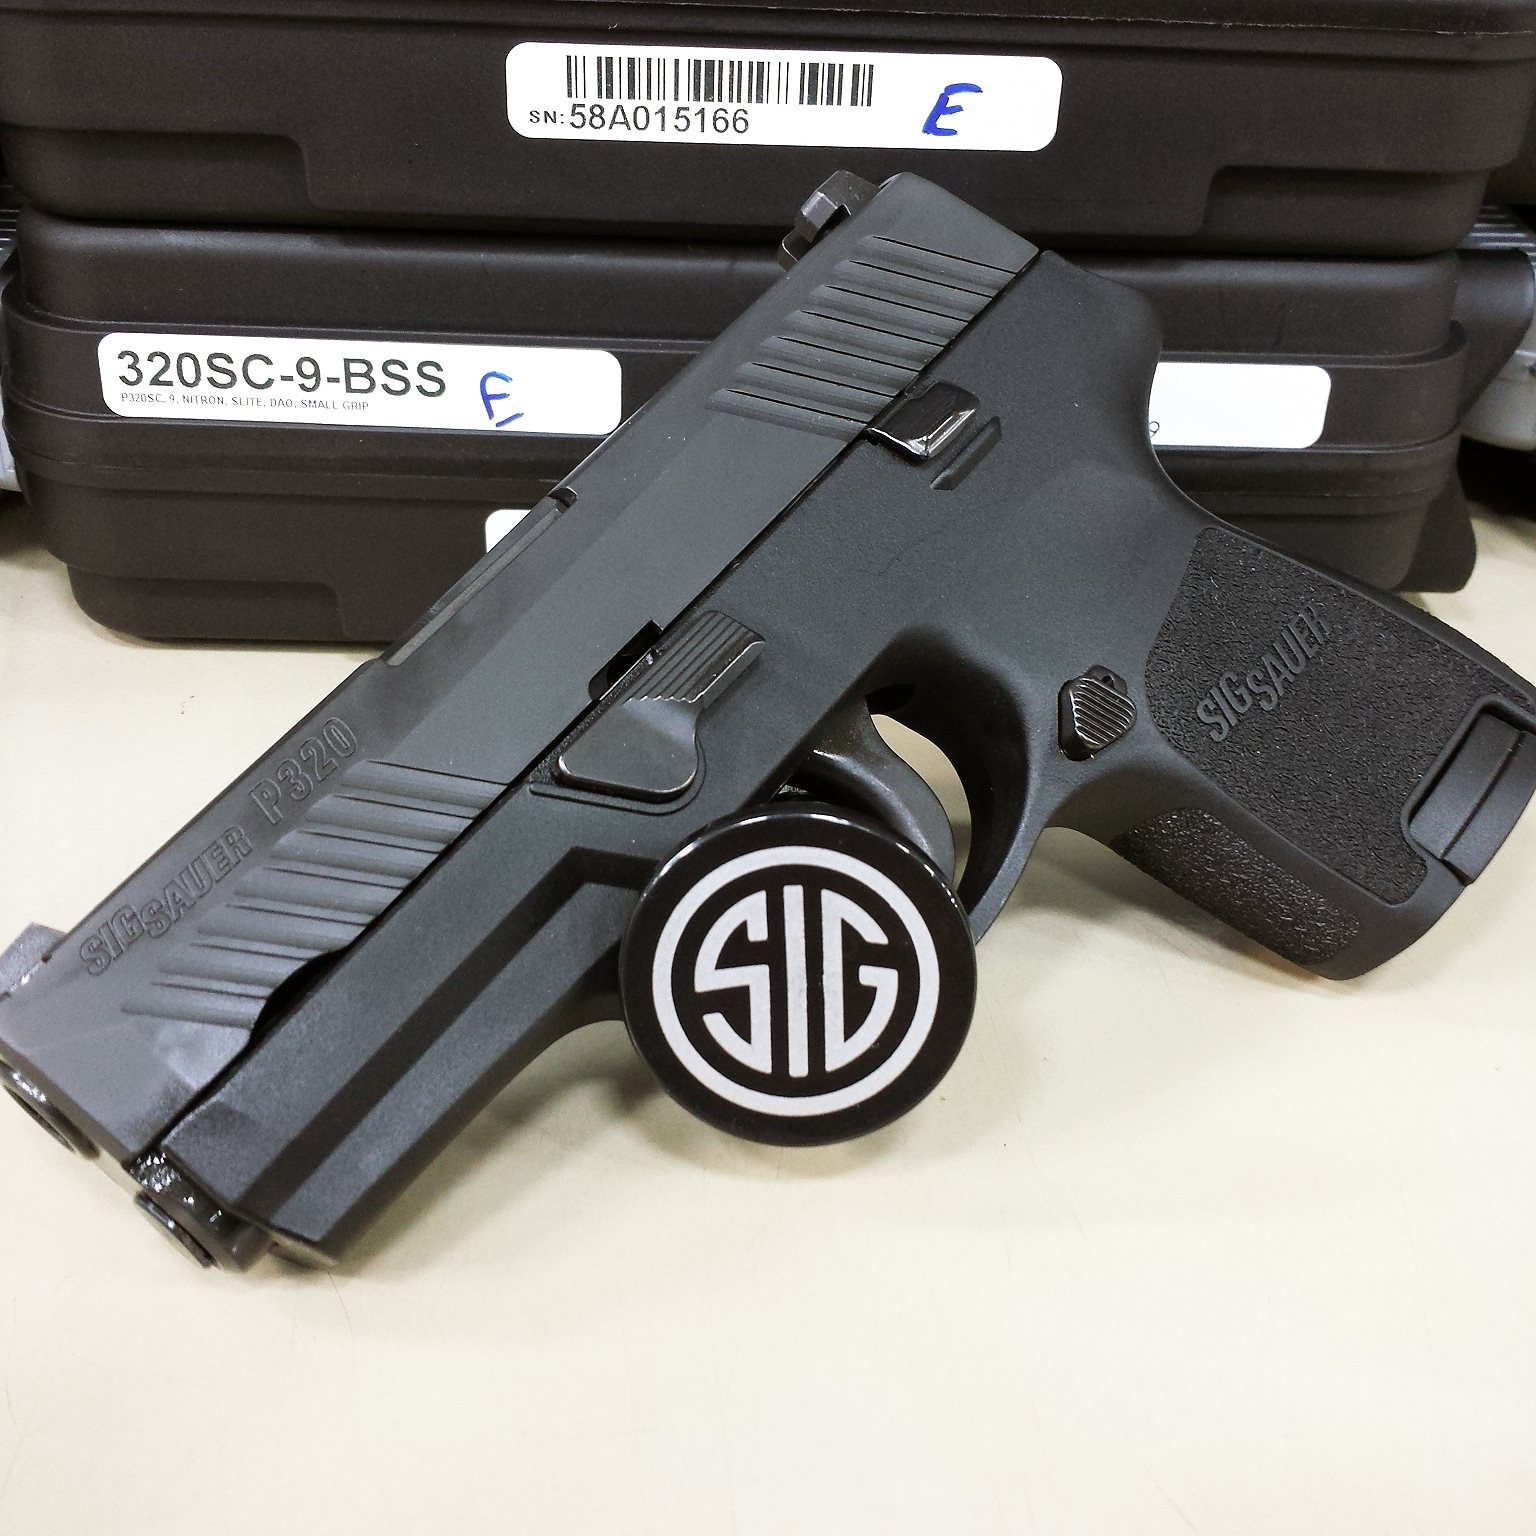 p320 subcompact 9mm